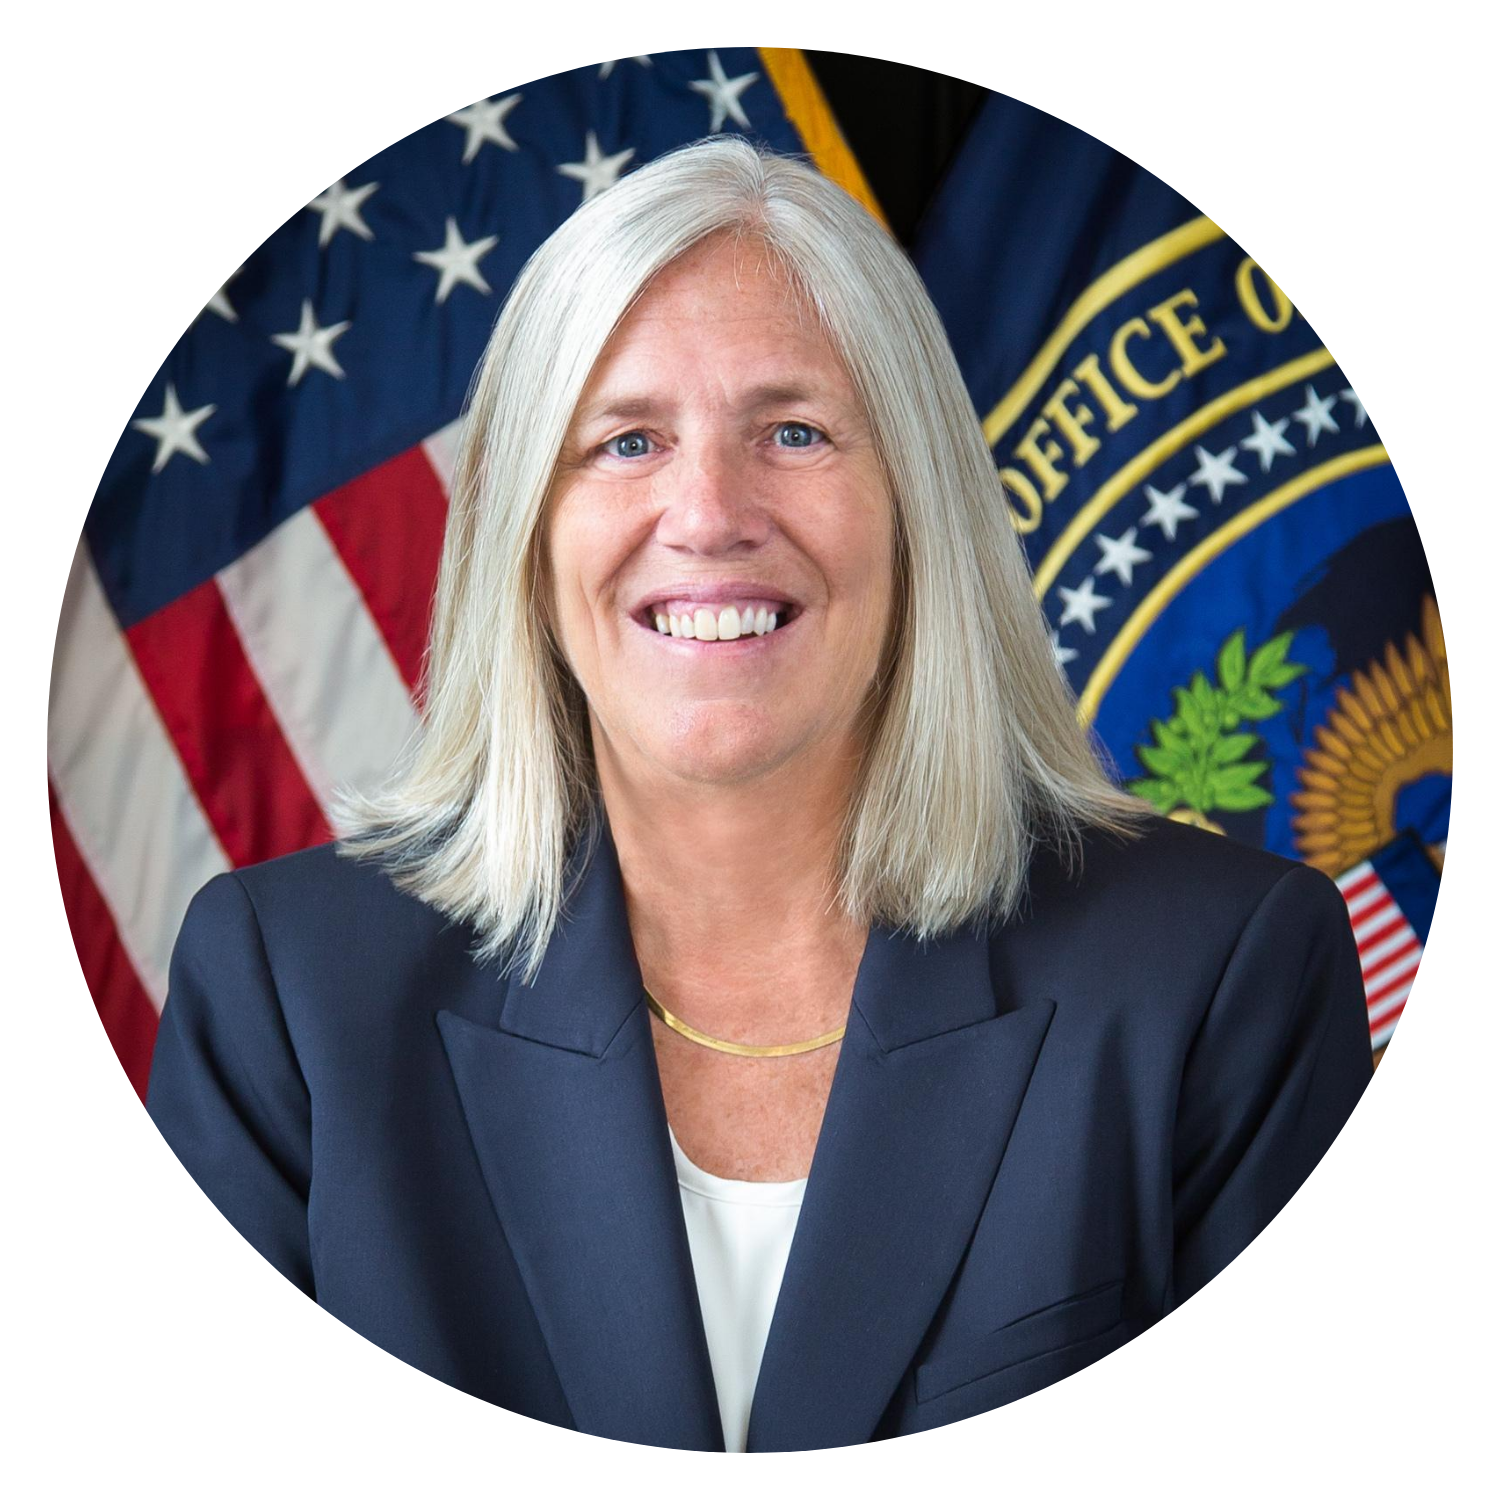 Hon. Sue Gordon, Principal Deputy Director of National Intelligence, Office of the Director of National Intelligence (DNI)